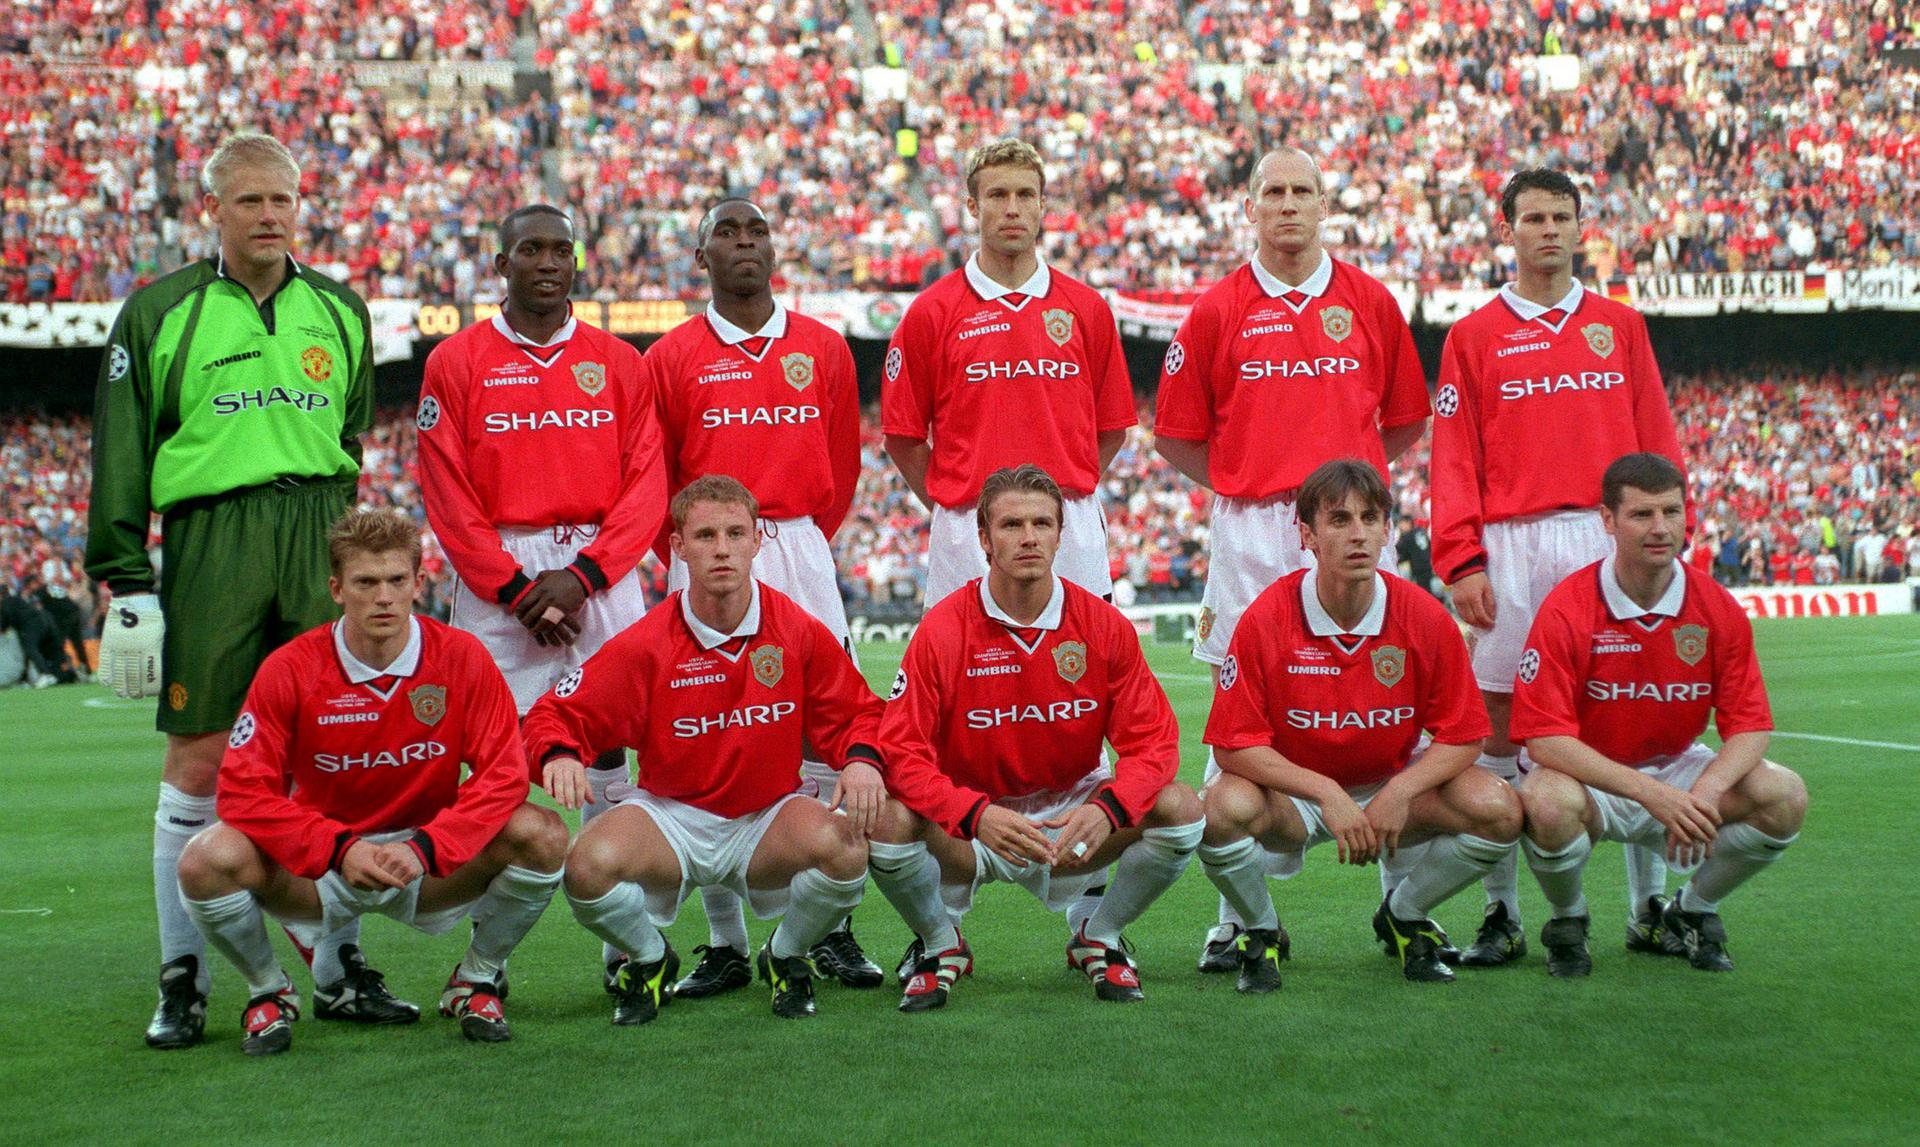 United line-up against Bayern Munich in the 1999 Champions League final,